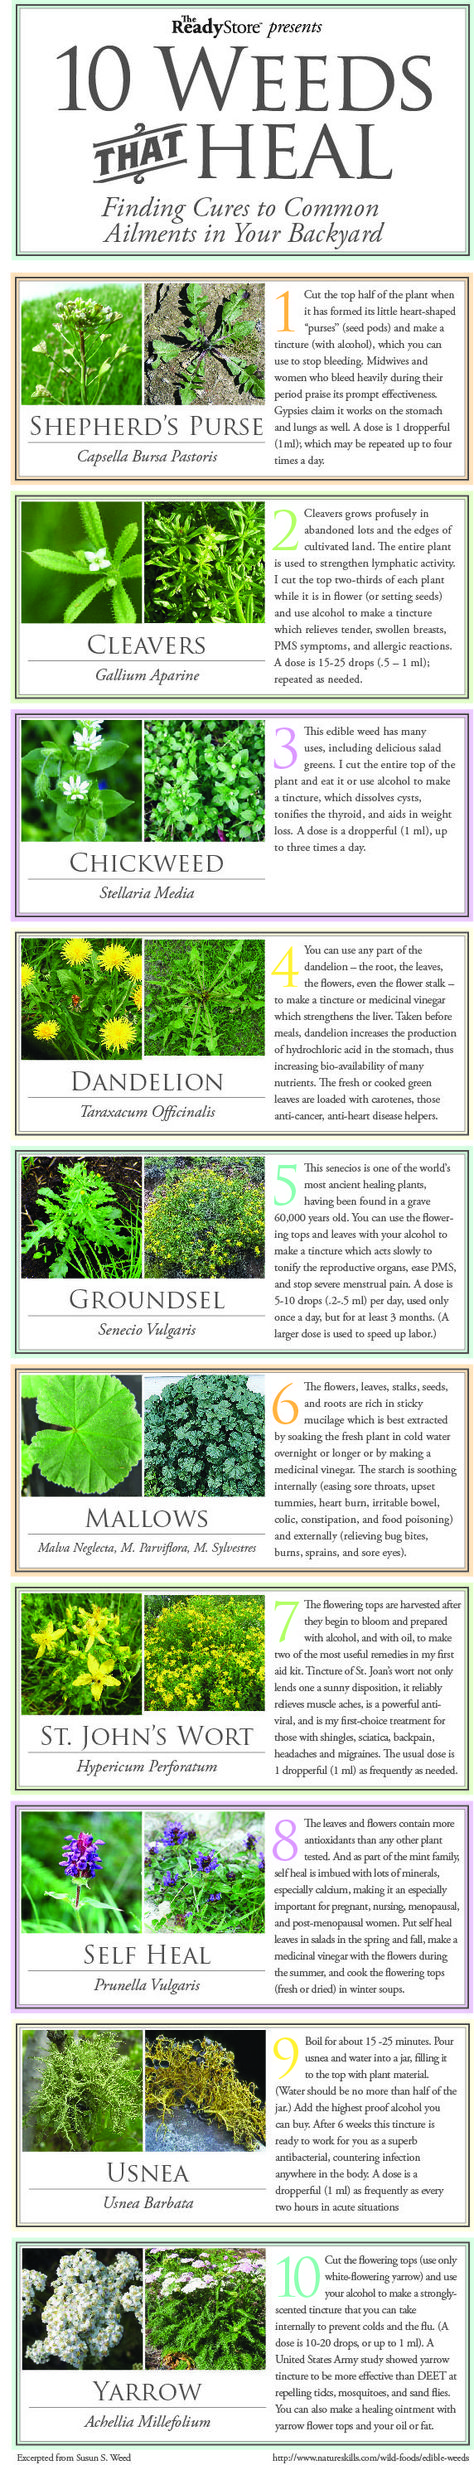 10 common weeds that you find in your yard and how they can heal sicknesses, burns, sores and other ailments.